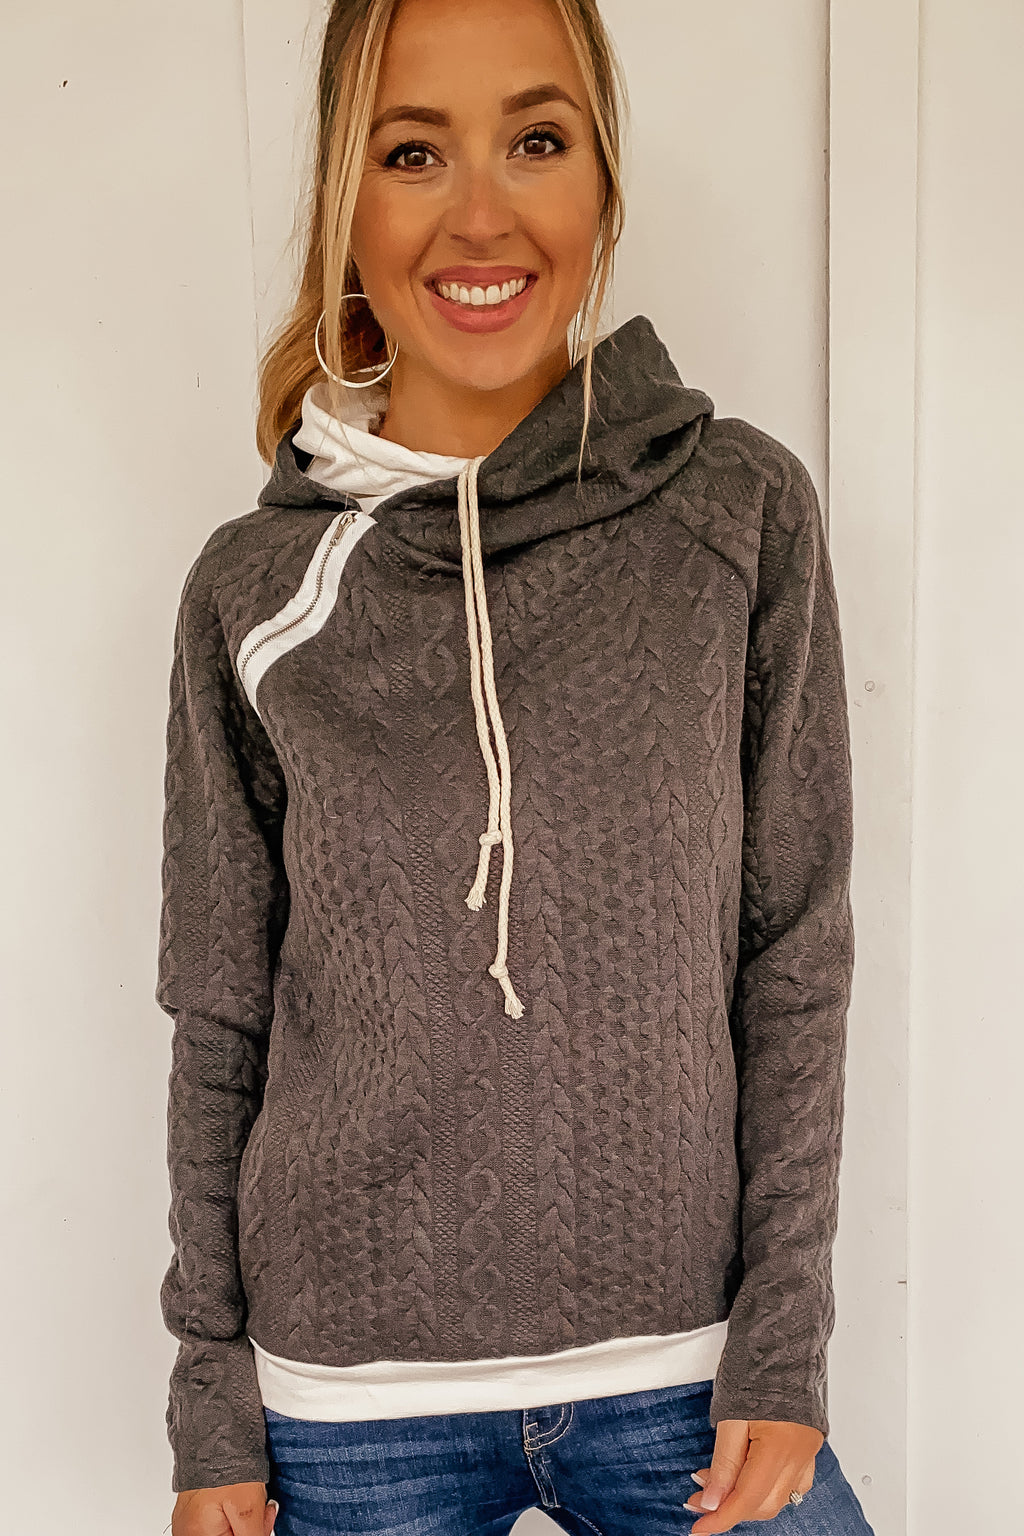 The Double Hooded Sweater Textured Sweatshirt